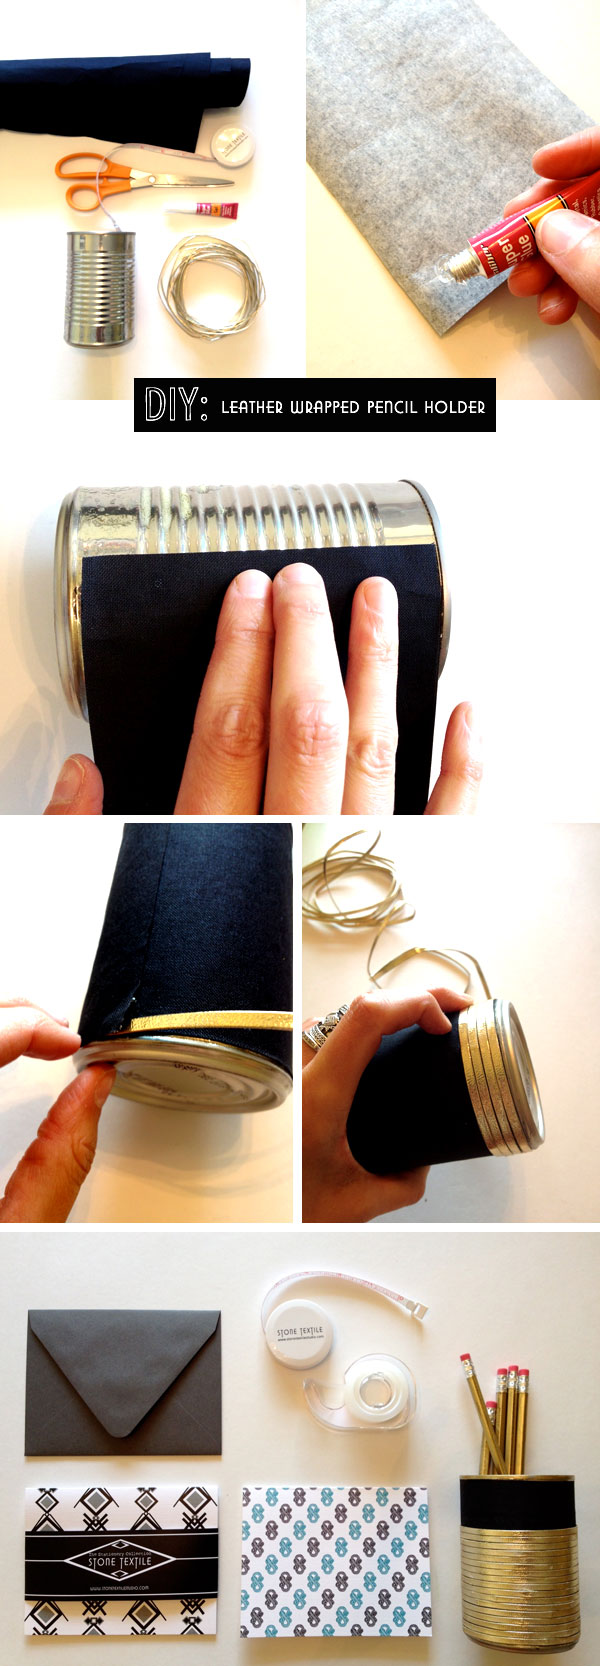 Leather-Wrapped-Pencil-Hold